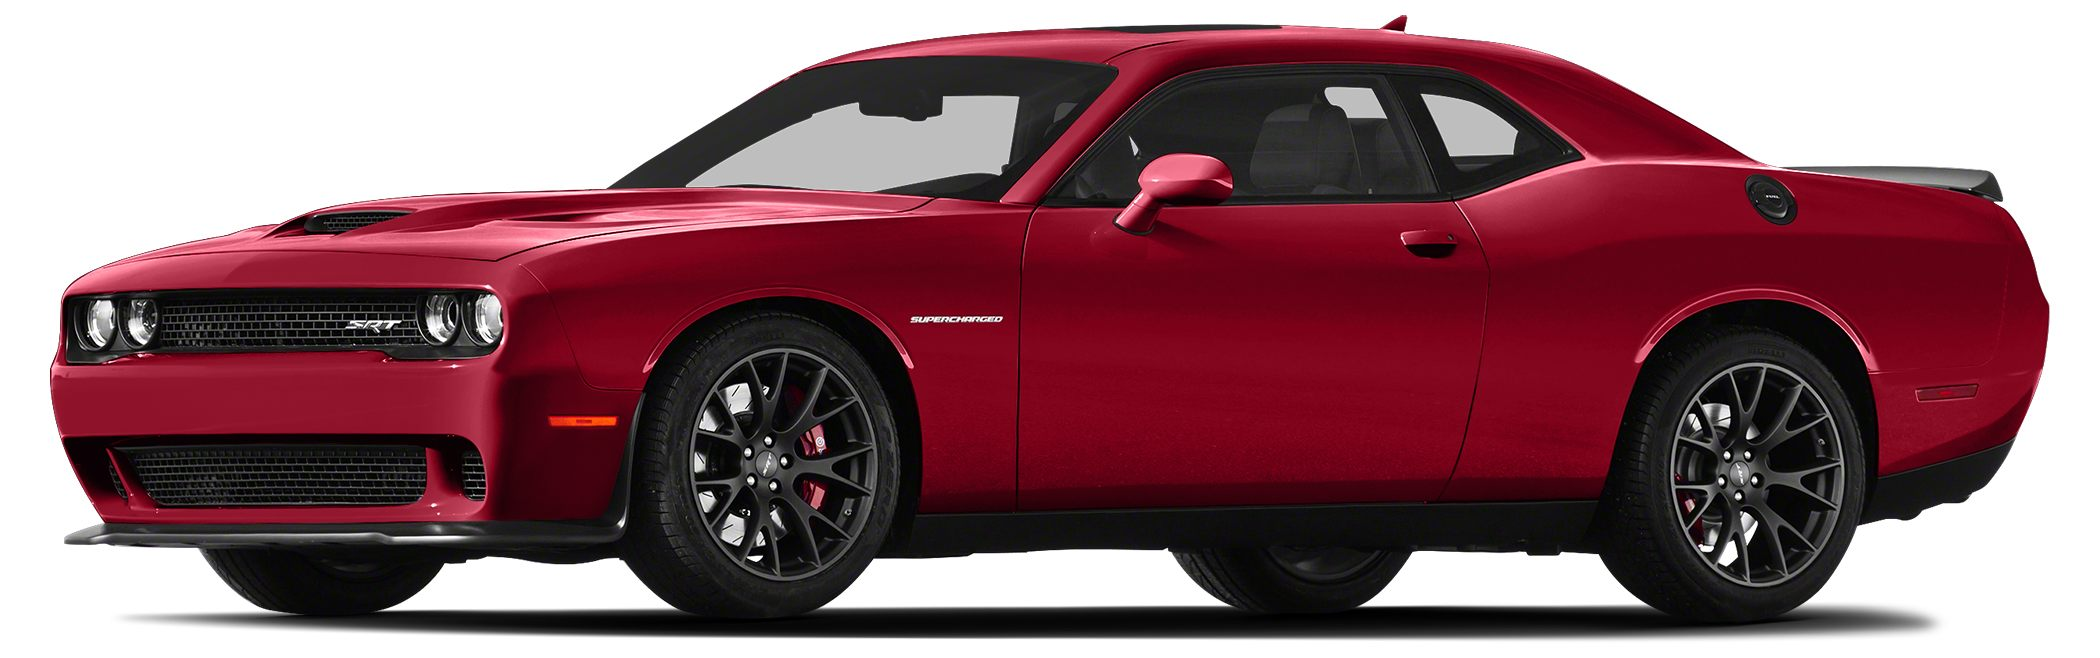 2015 Dodge Challenger SRT Hellcat Coupe for sale in Tacoma for $84,065 with 10 miles.